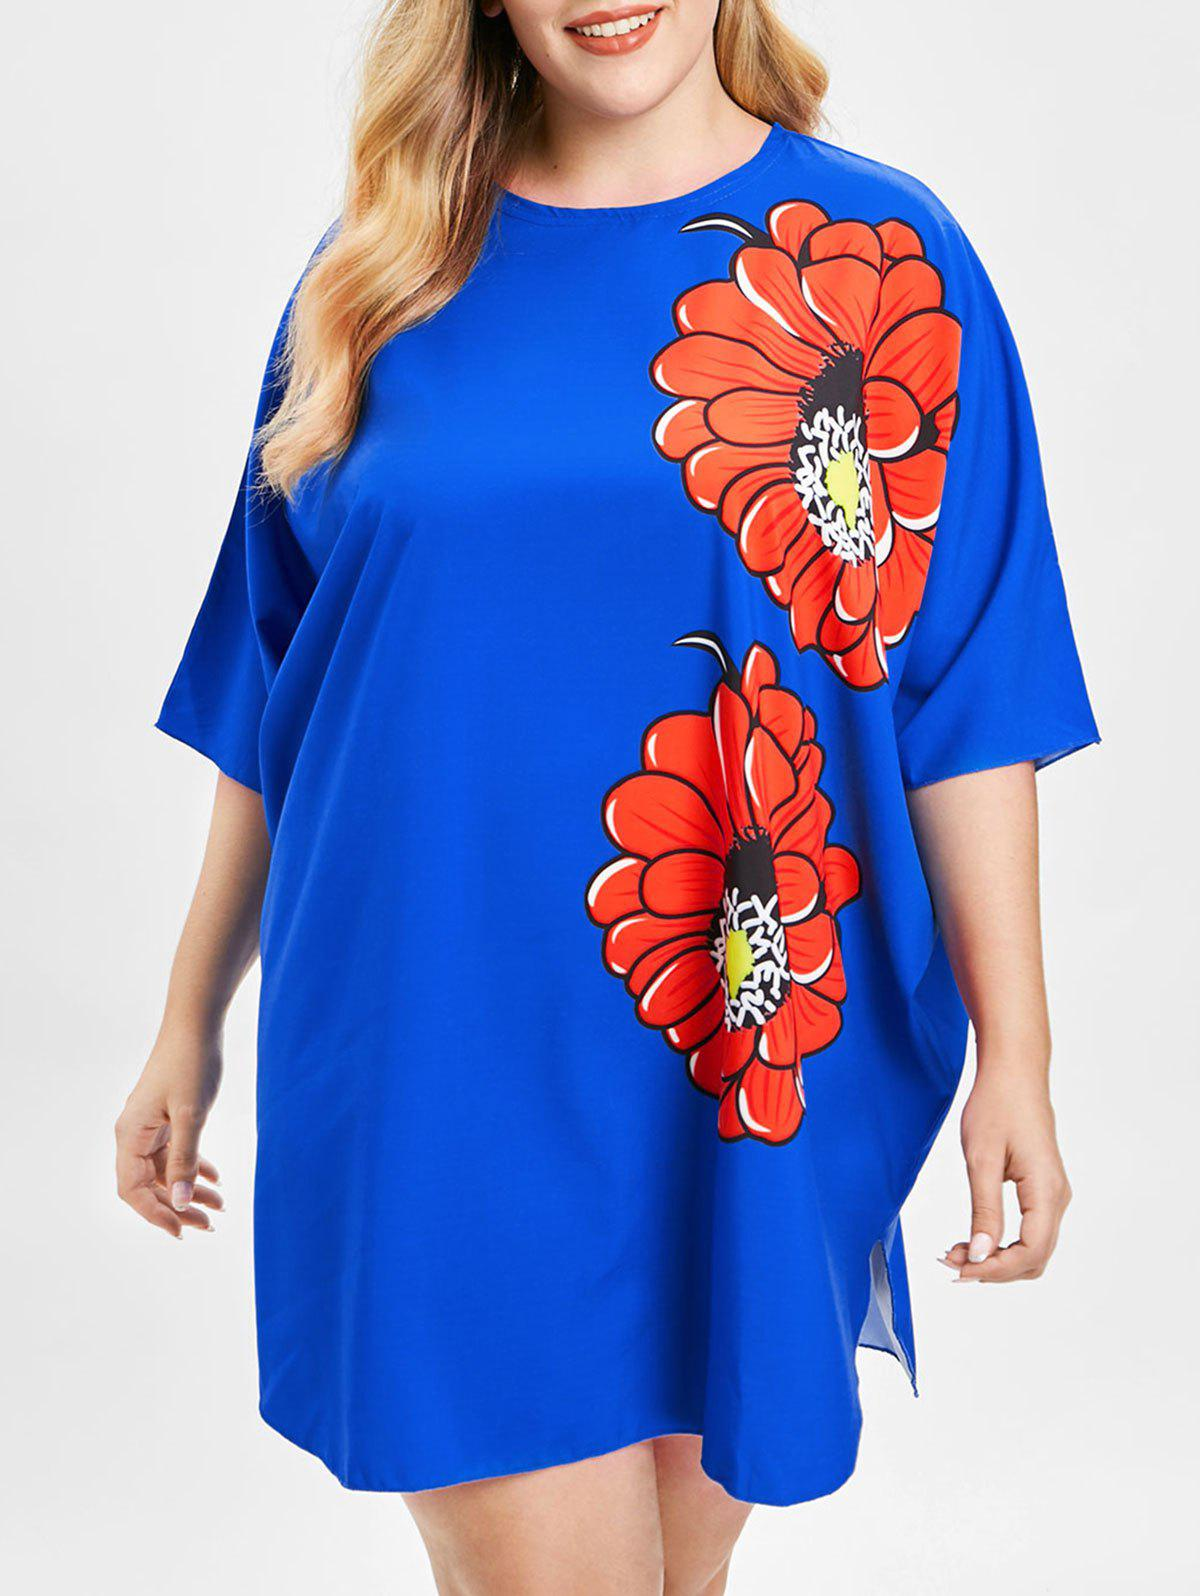 Plus Size Batwing Sleeve Floral Print Dress - BLUE L